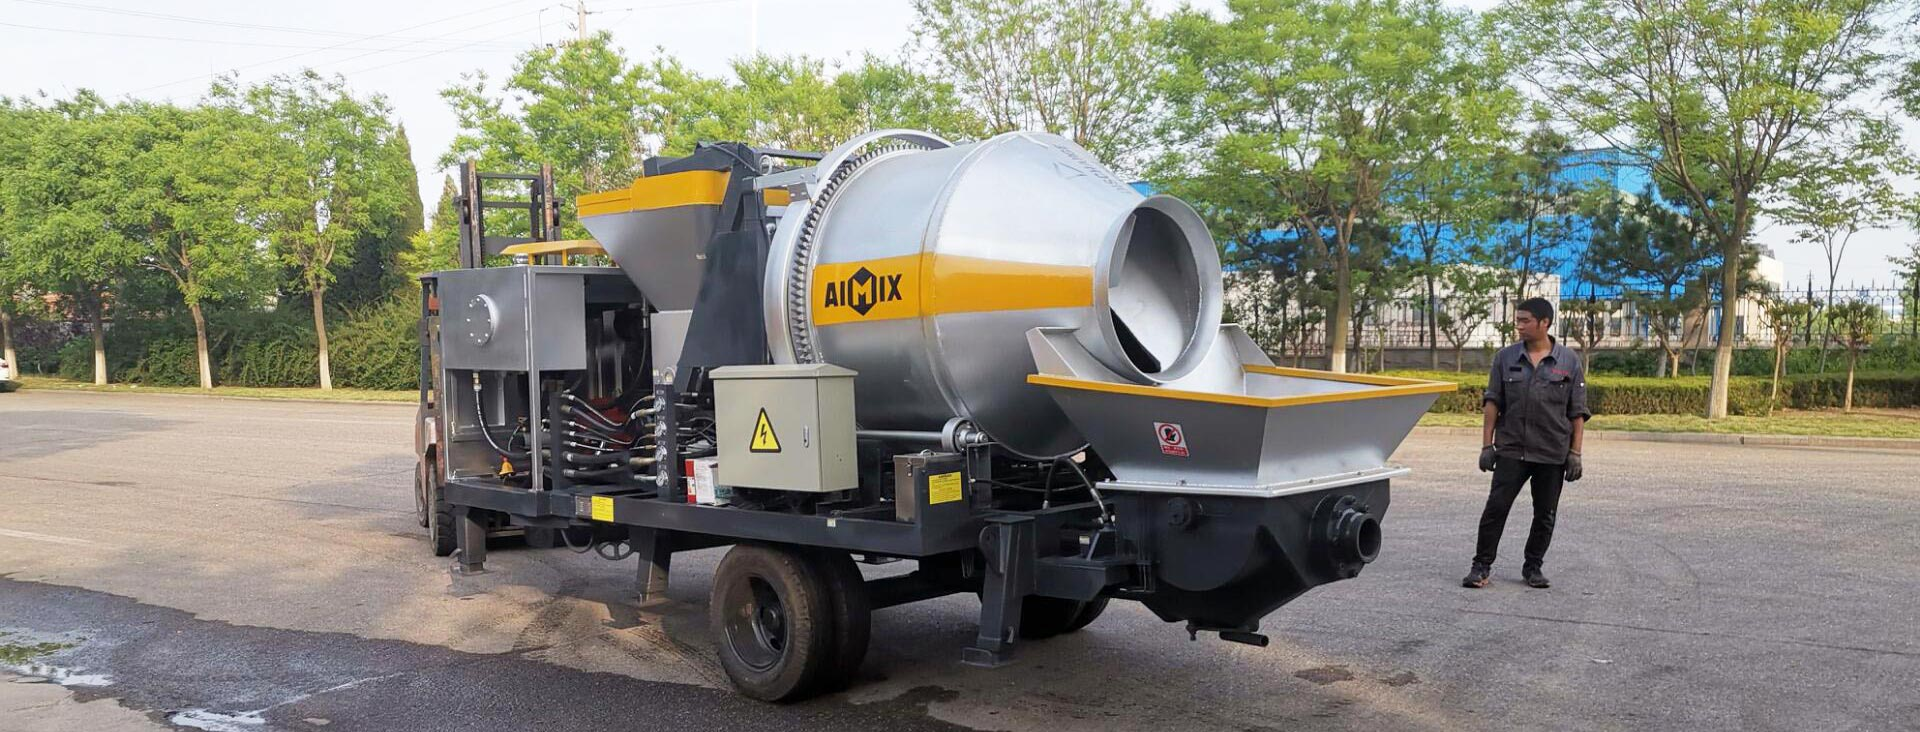 Concrete Mixer With Pump For Sale Pakistan - Diesel And